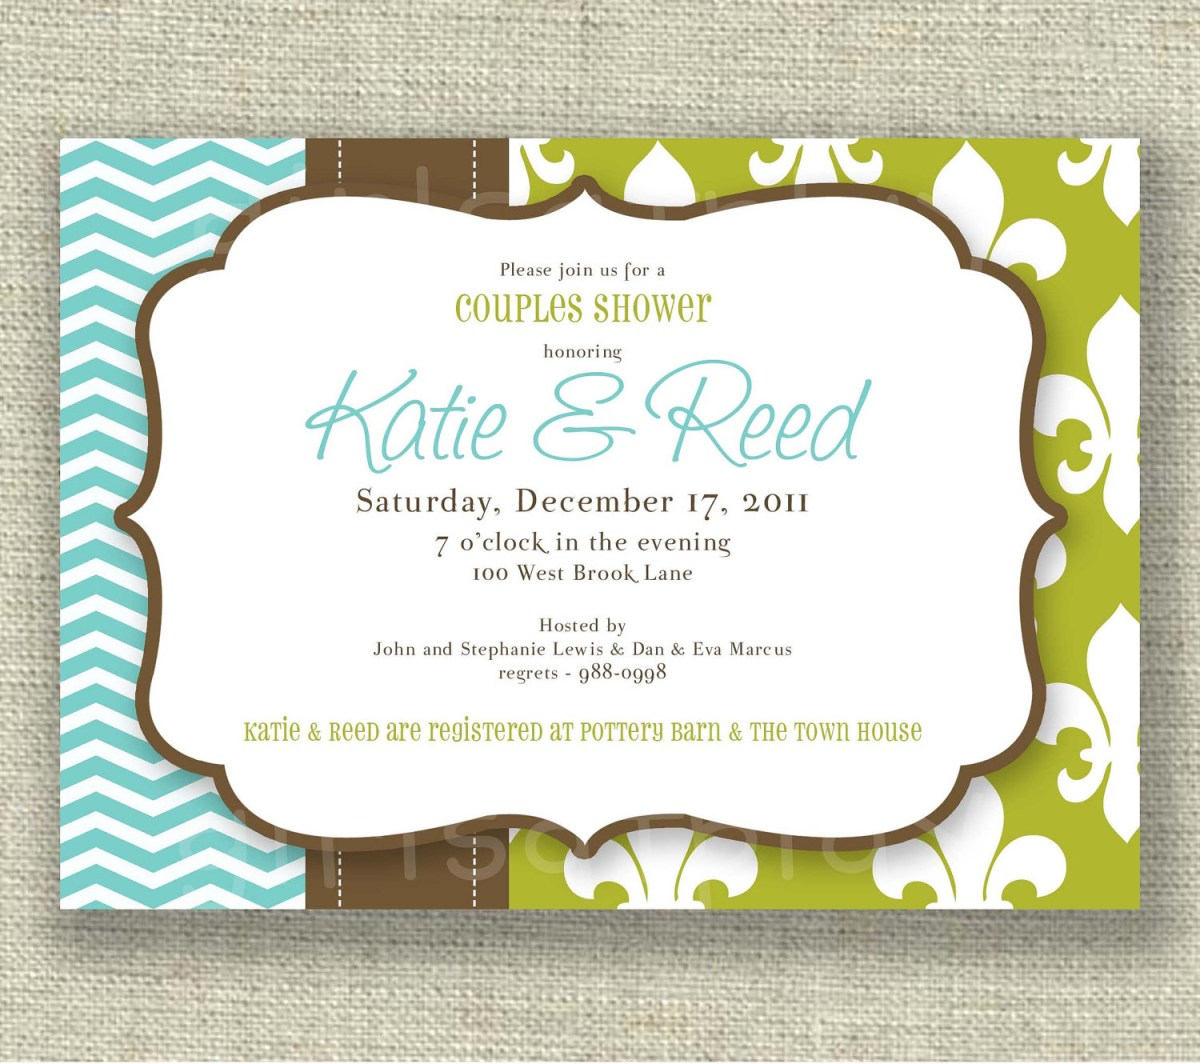 Coed Wedding Shower Invitations Photo Quick View Dm In Image